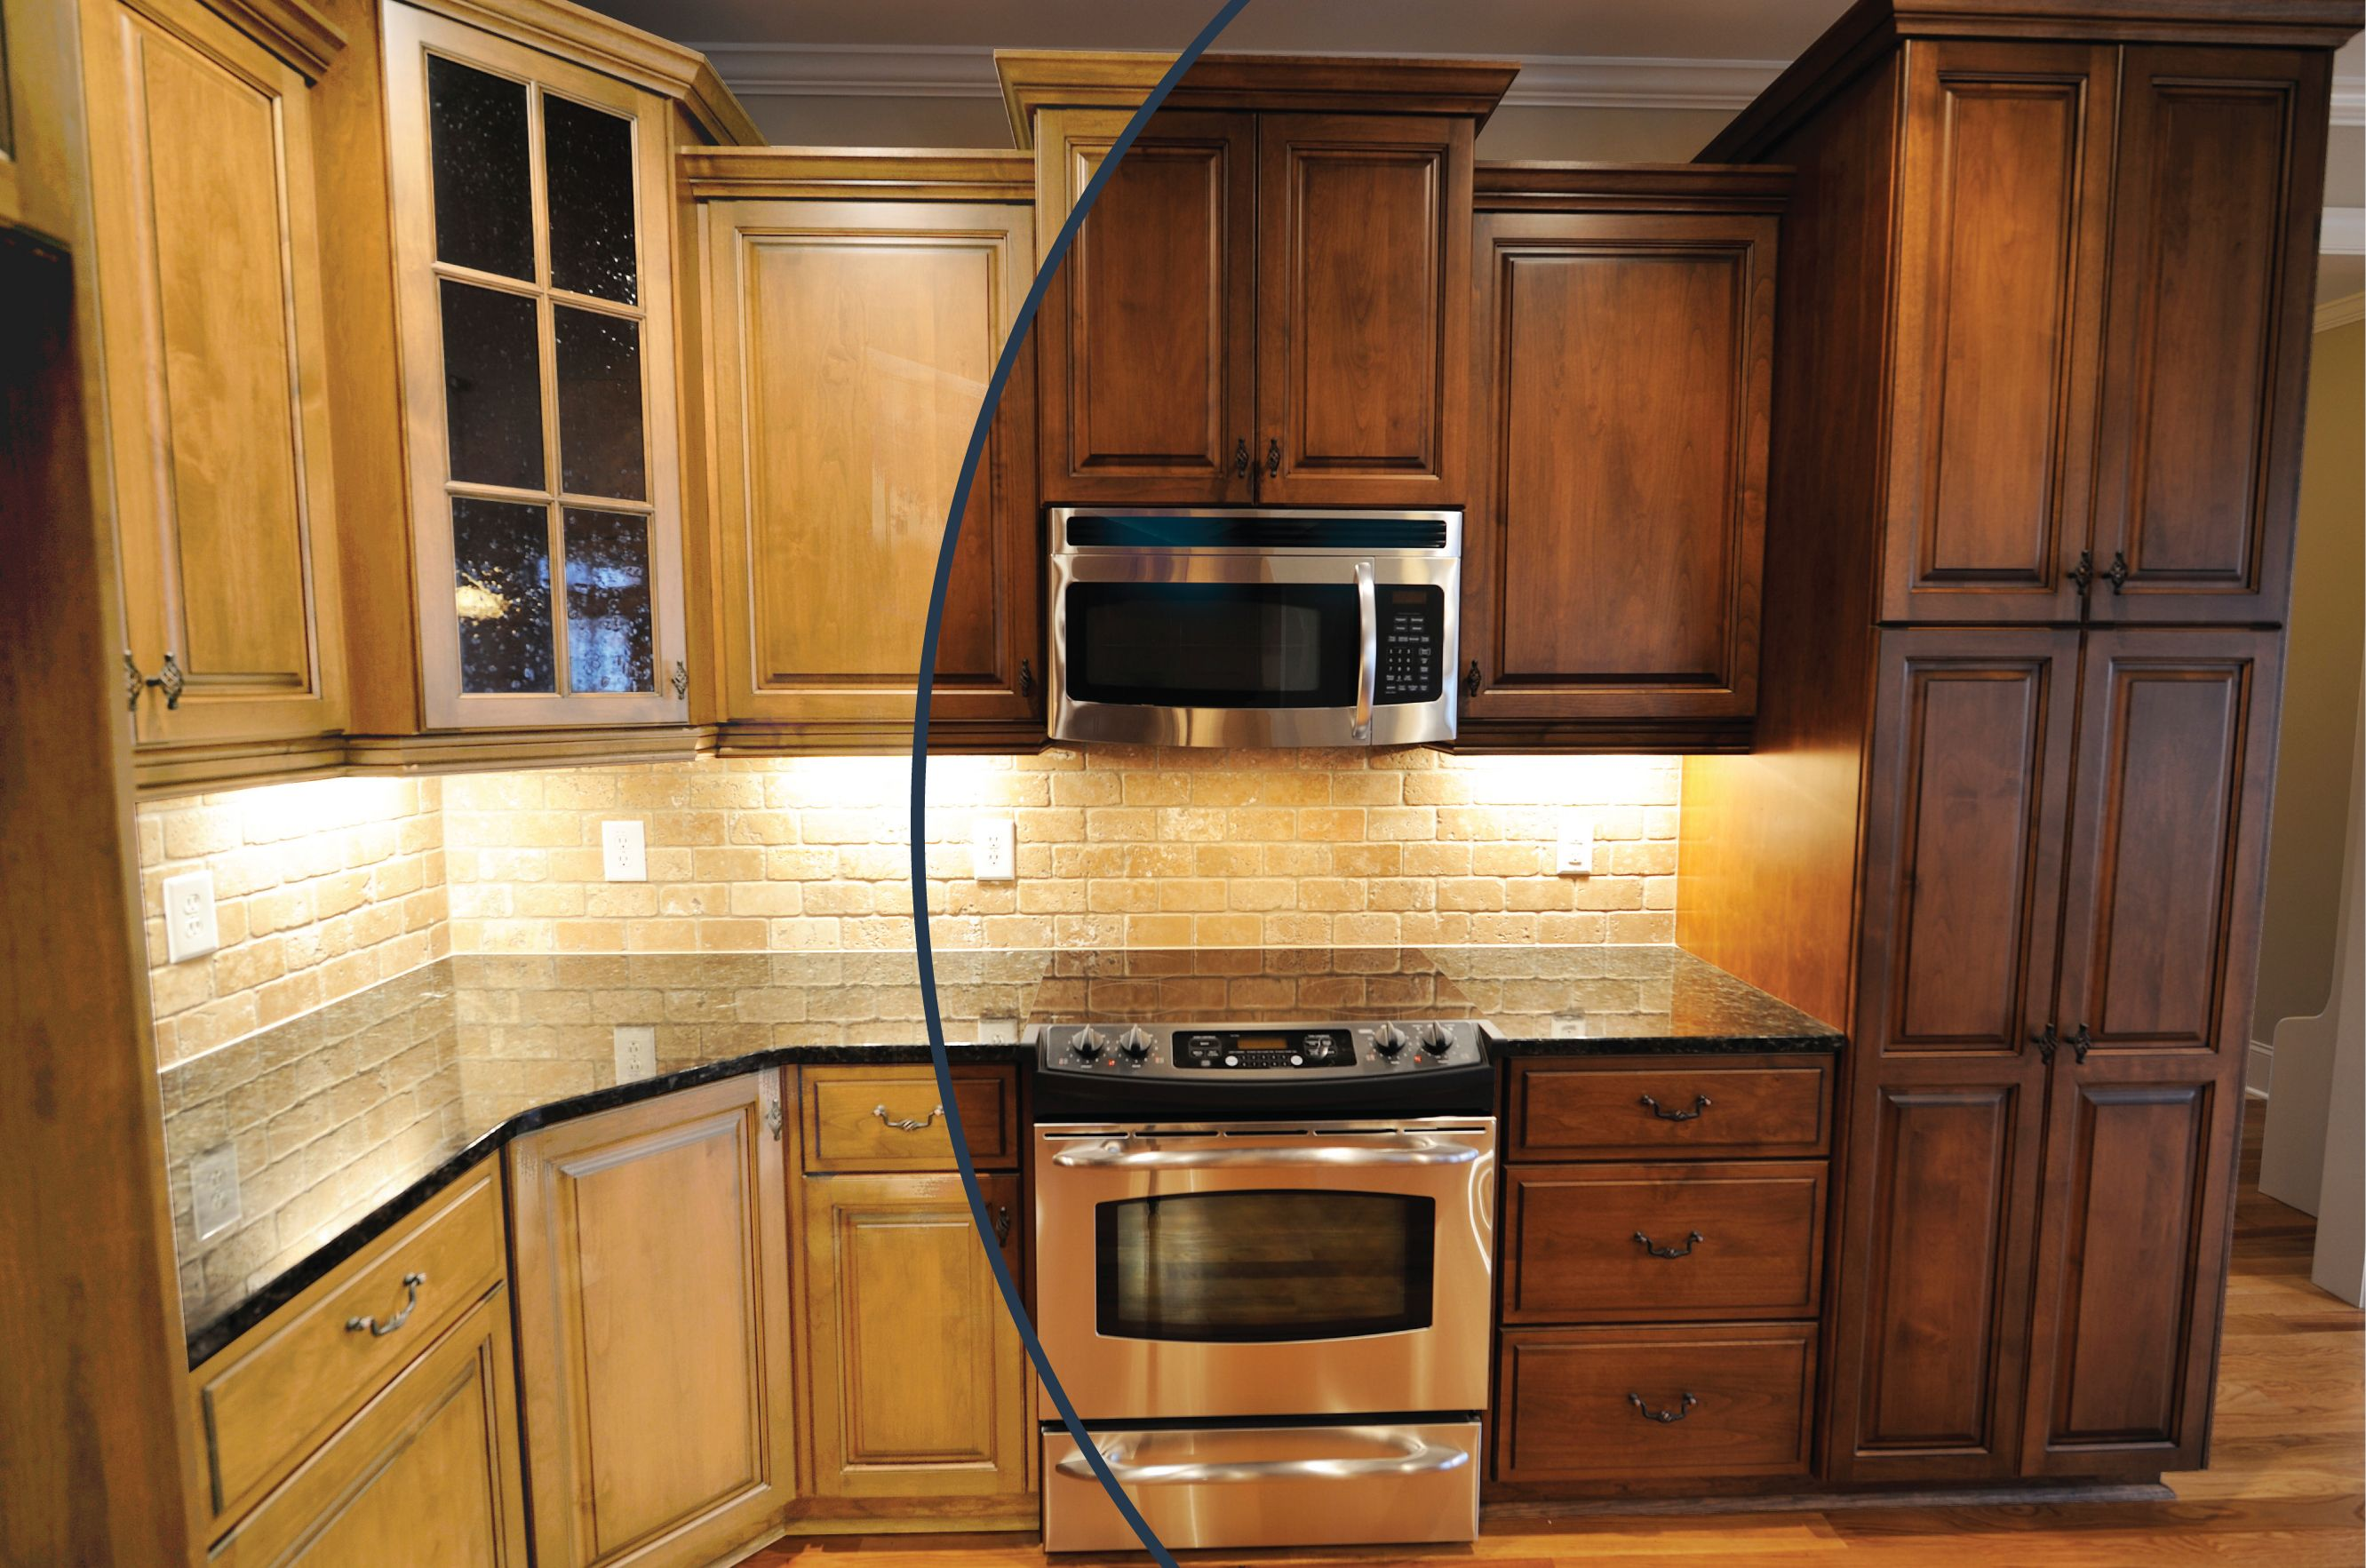 Https Www Nhance Com Merrimackvalley Stained Kitchen Cabinets Oak Kitchen Remodel Kitchen Cabinets Before And After